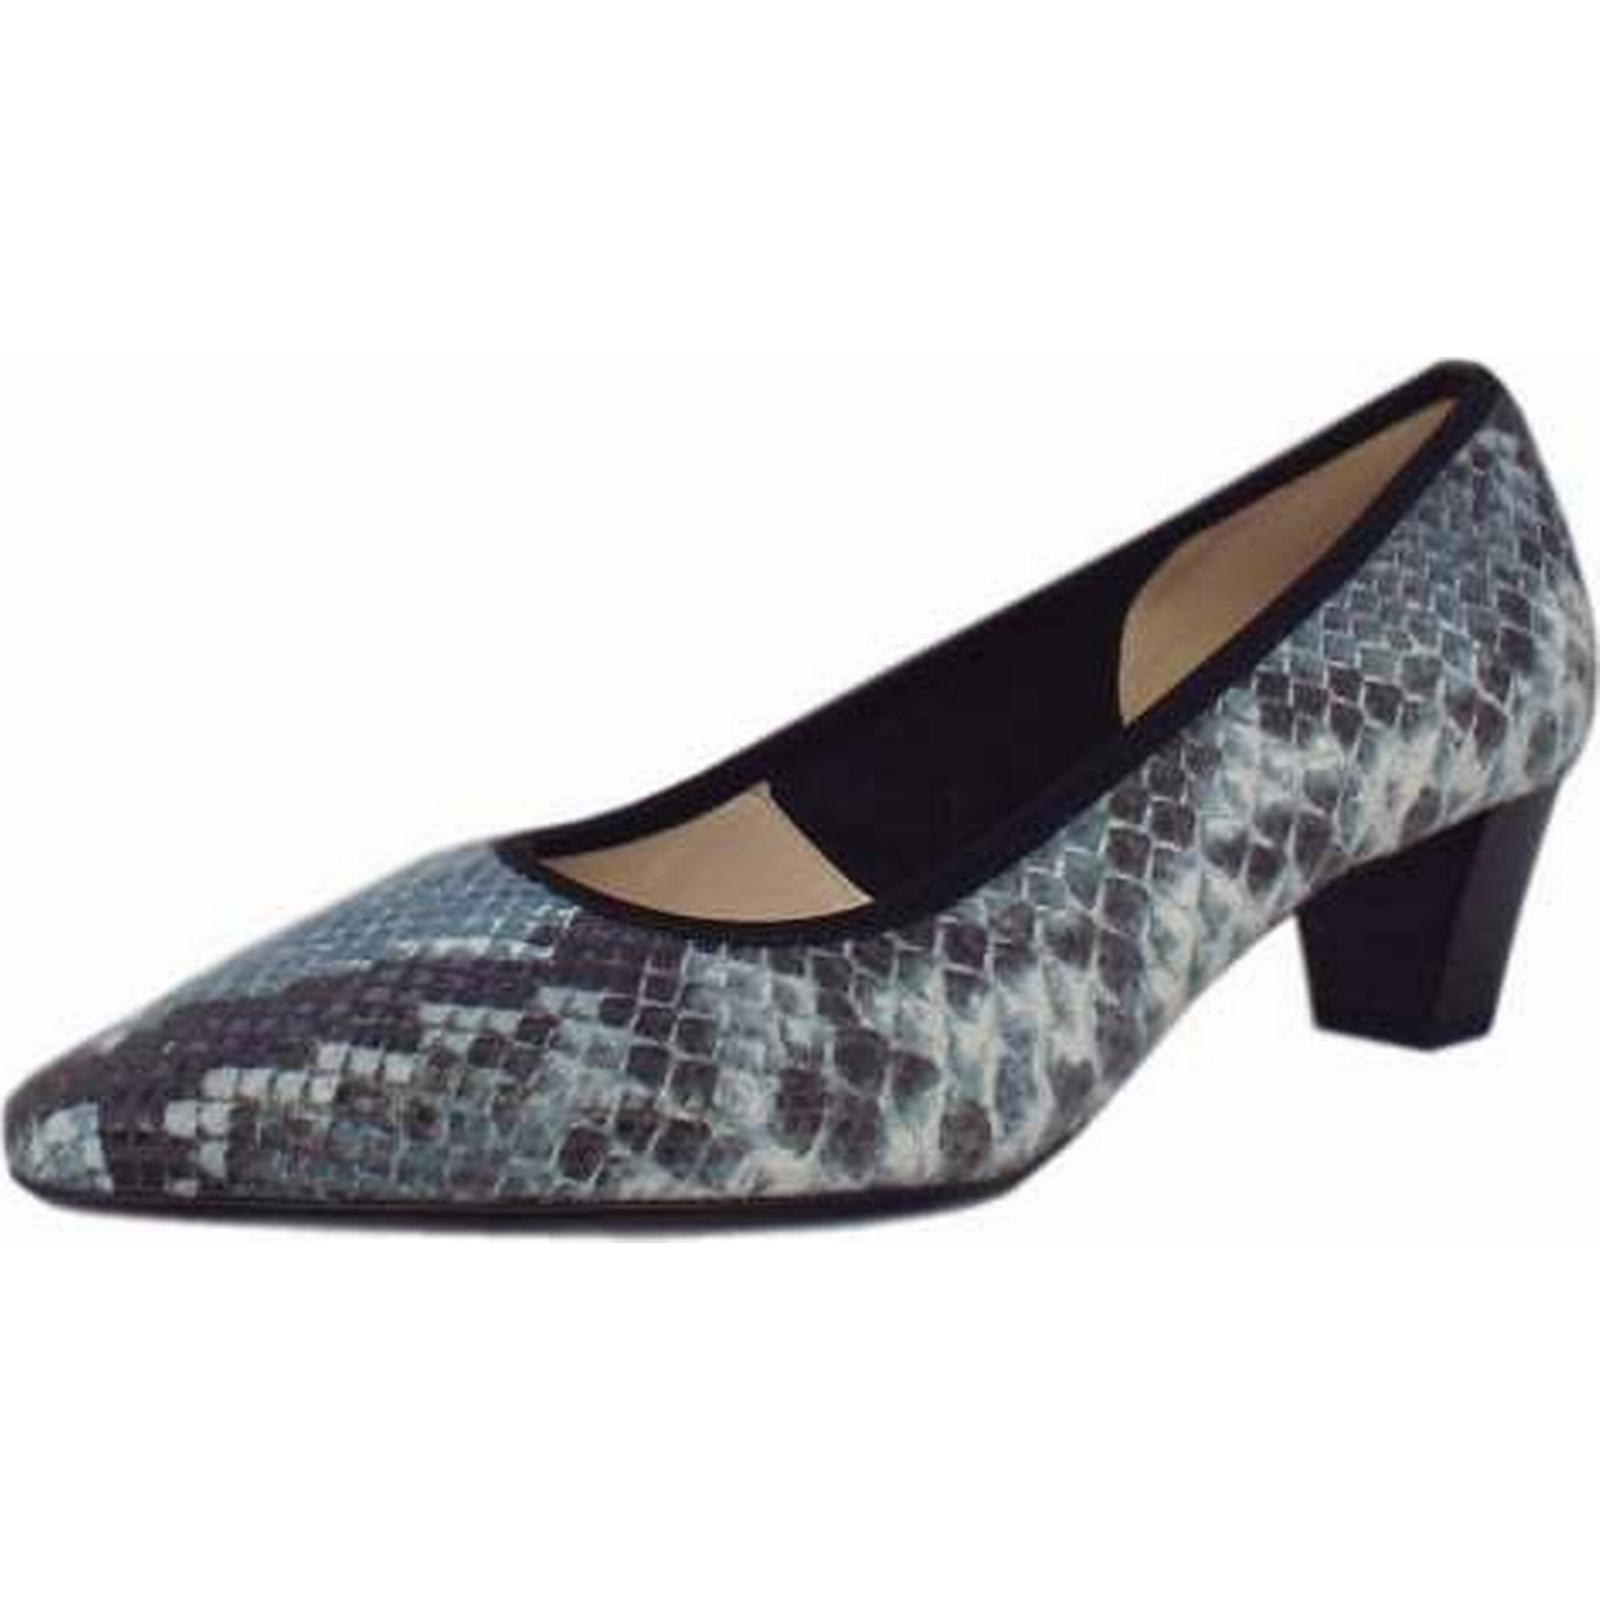 Peter Kaiser SWENJA PETER KAISER LADIES SHOES Size: Size: SHOES 8.5 49c8a8